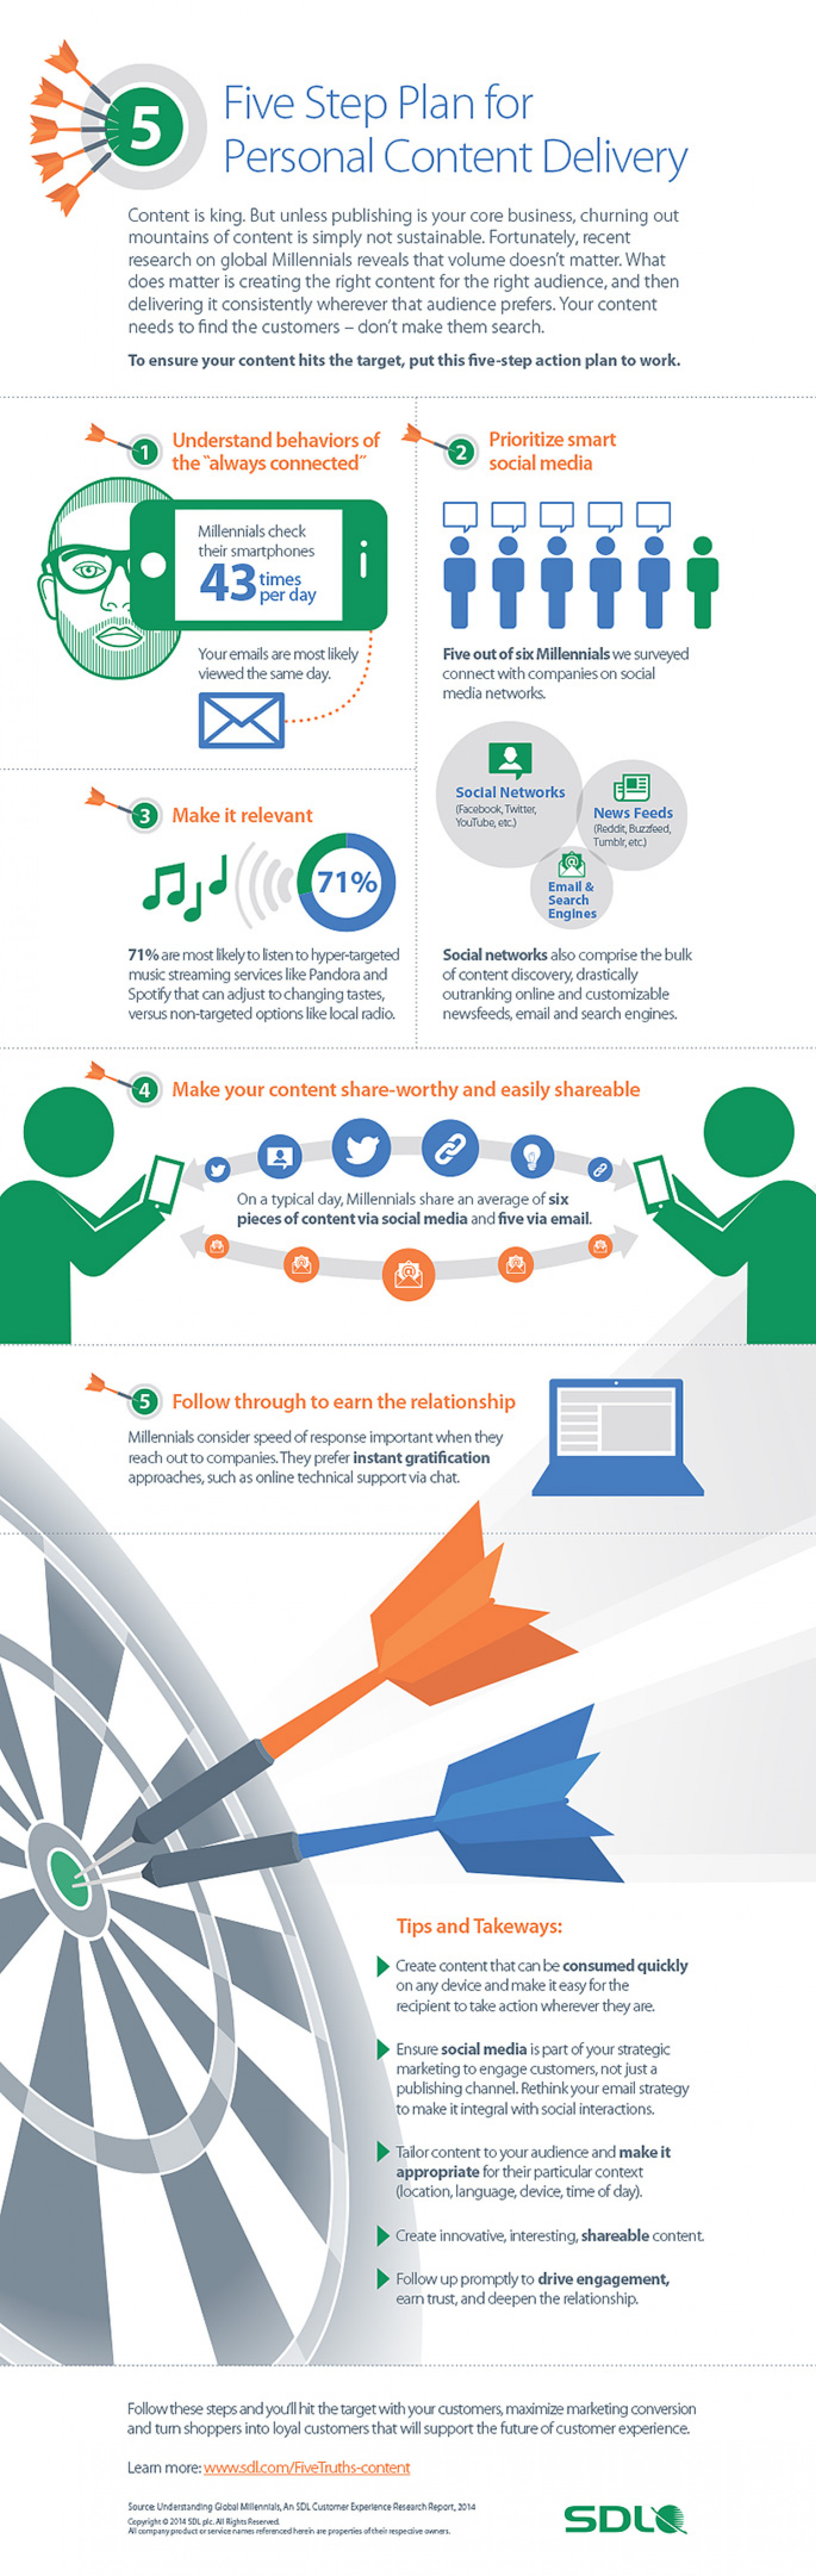 Five Step Plan for Personal Content Delivery Infographic